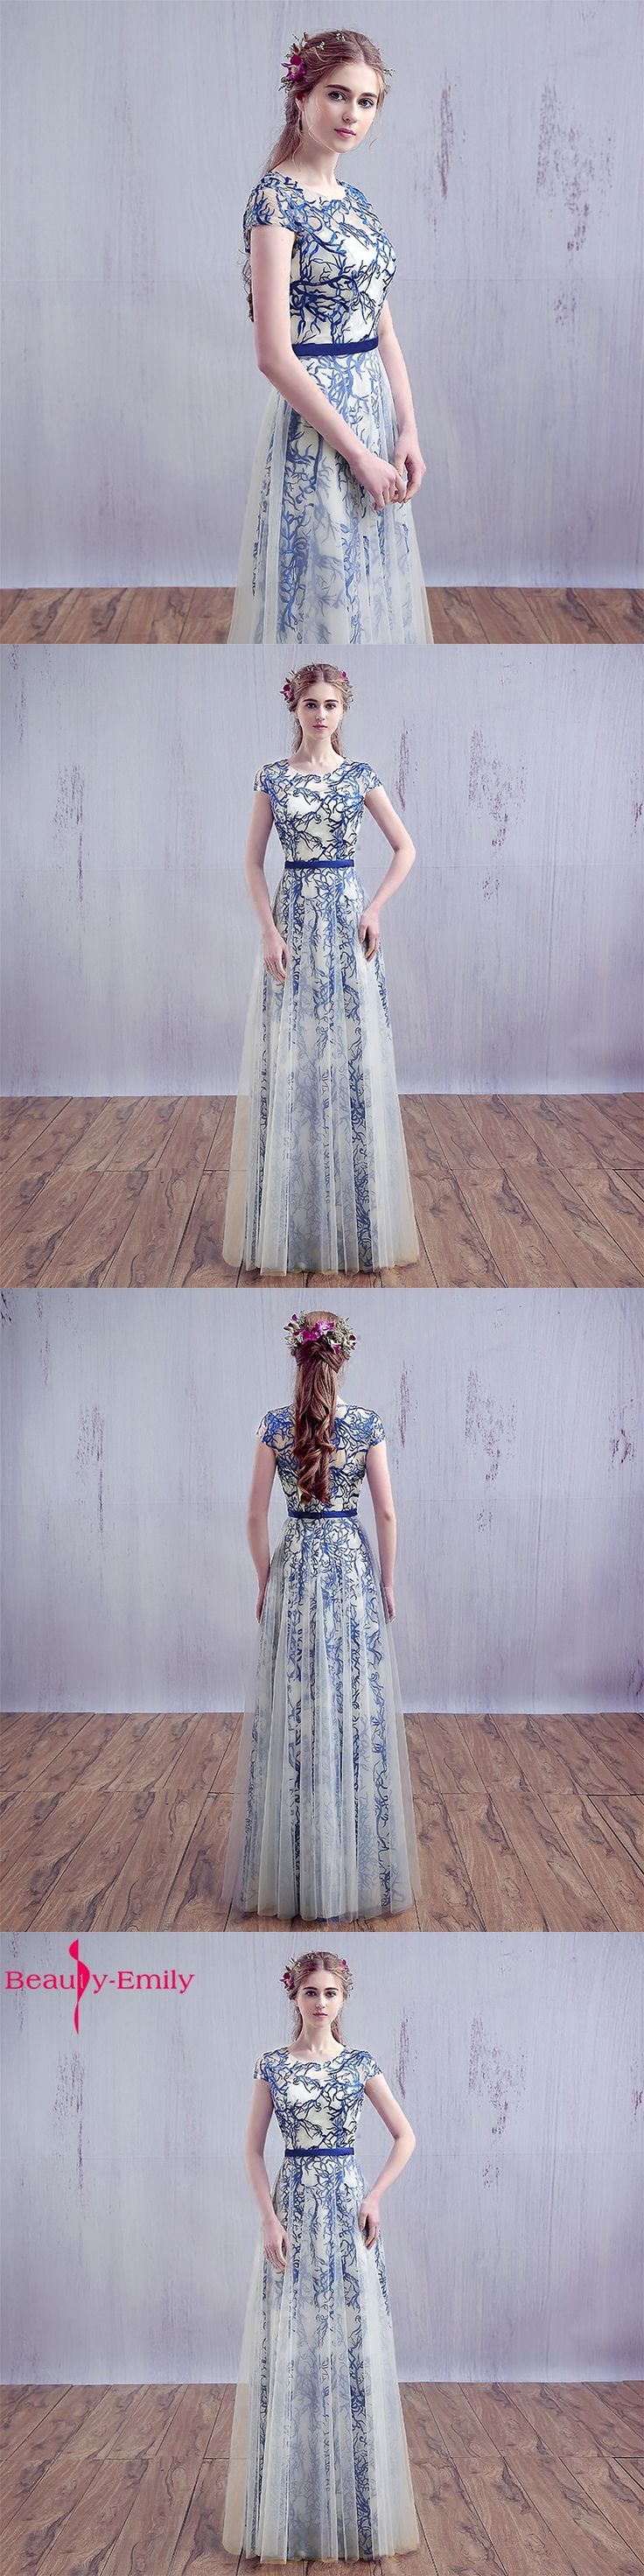 Evening Dresses 2017 Bride Banquet Lace Long Party Gown Elegant Blue and White Porcelain Embroidery Long Prom Dresses 2017